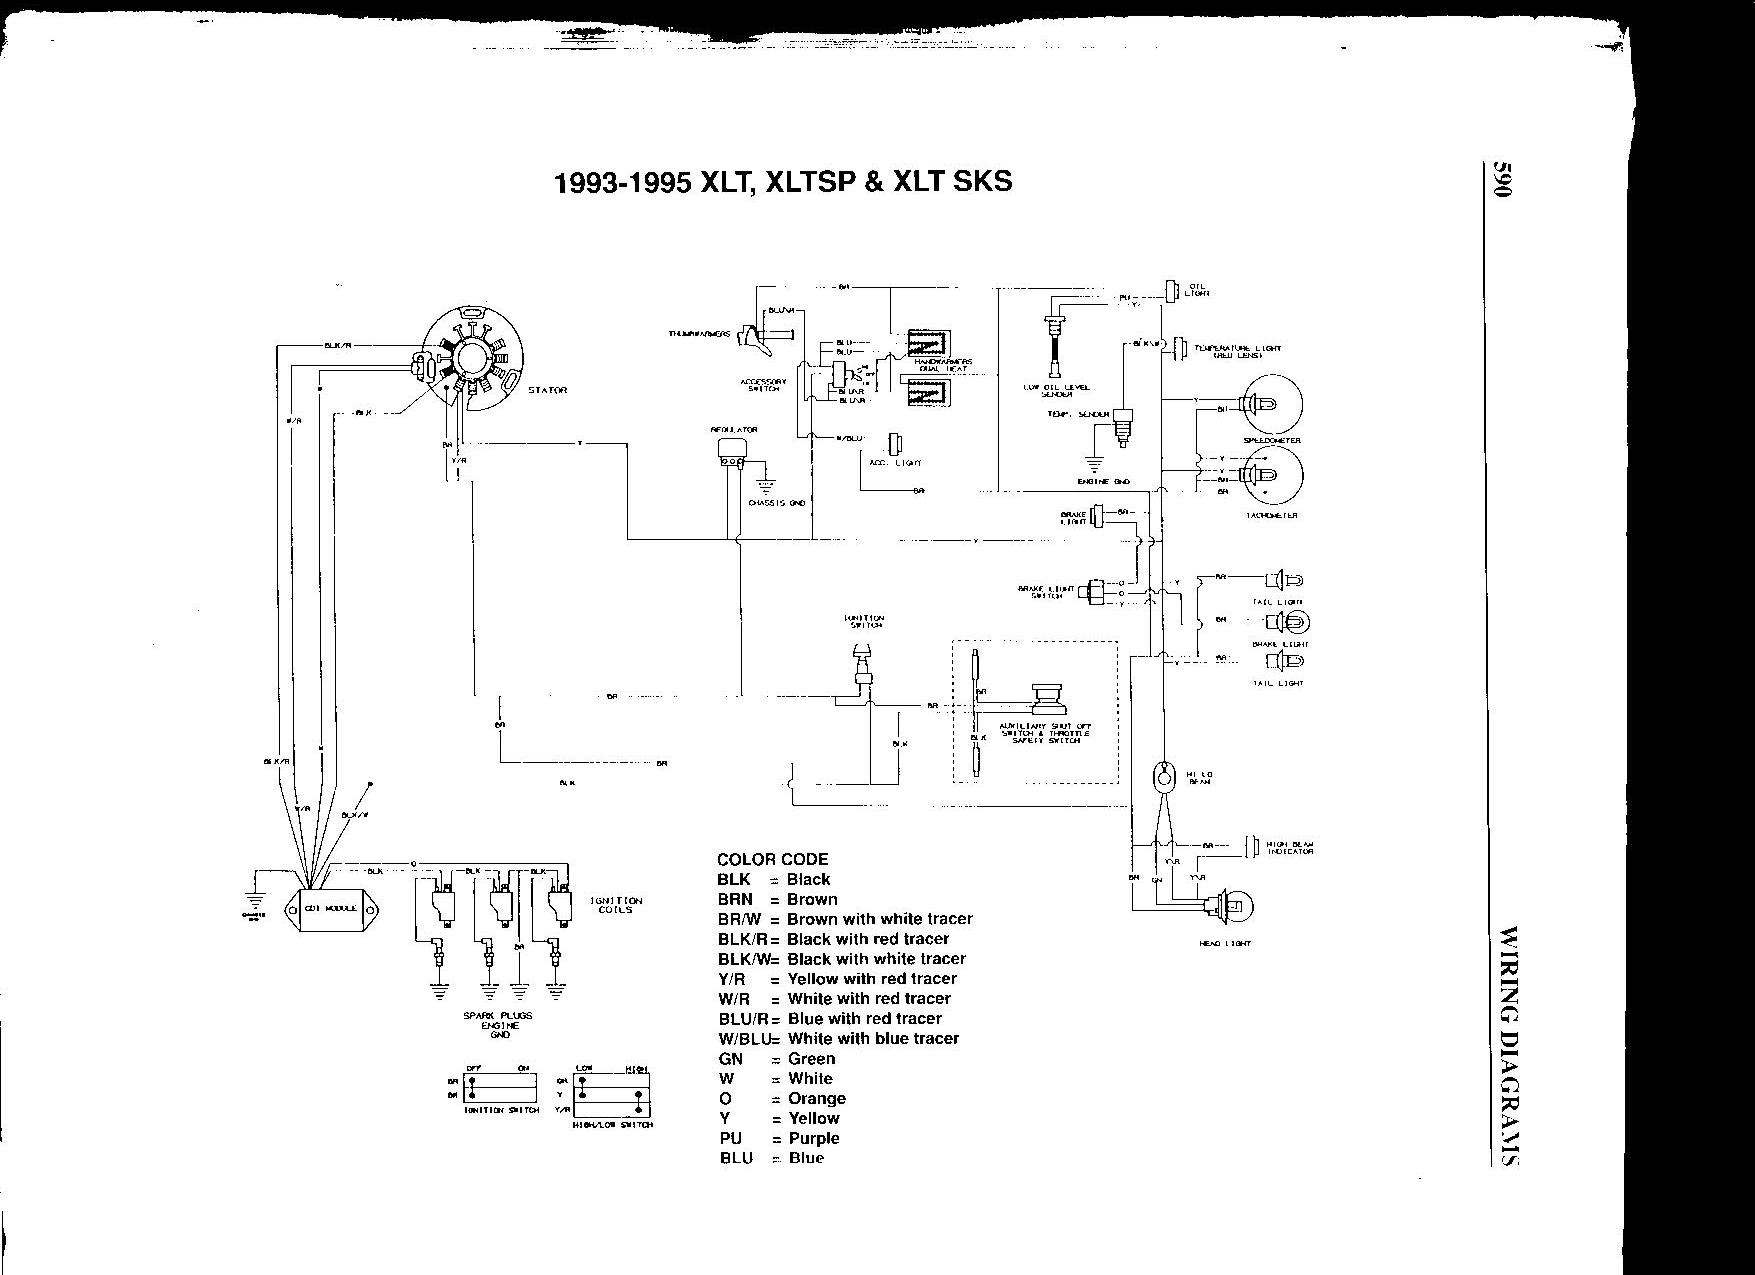 1992 Wildcat 700 Wiring Diagram Great Design Of 1988 Arctic Cat Snowmobile 92 Get Free Image About T250 Bobcat 3400